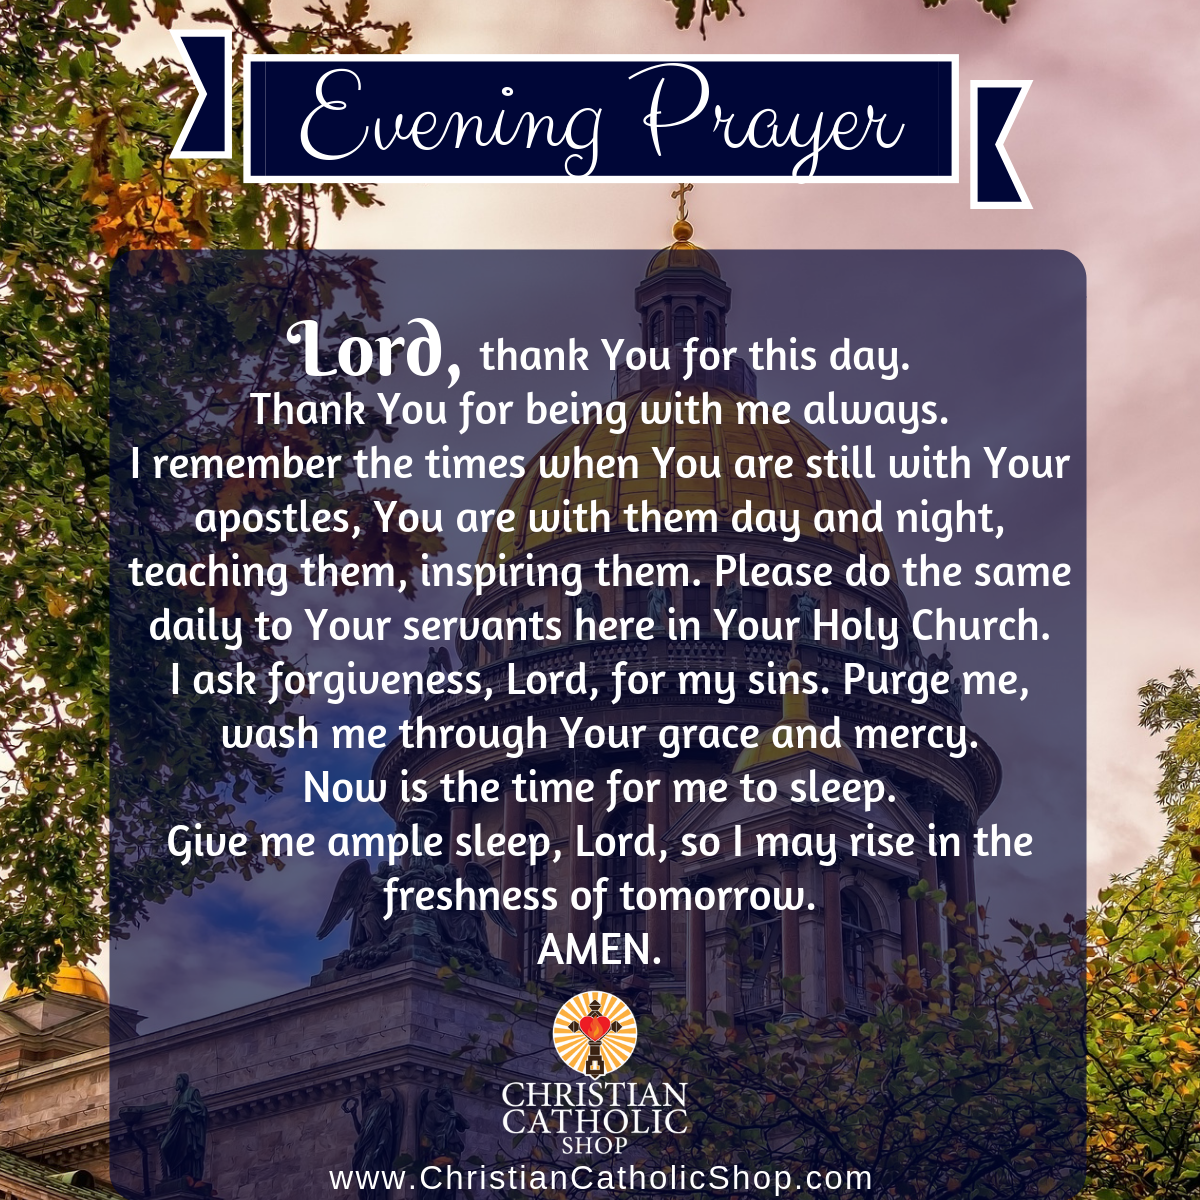 Evening Prayer Catholic Saturday 4-11-2020